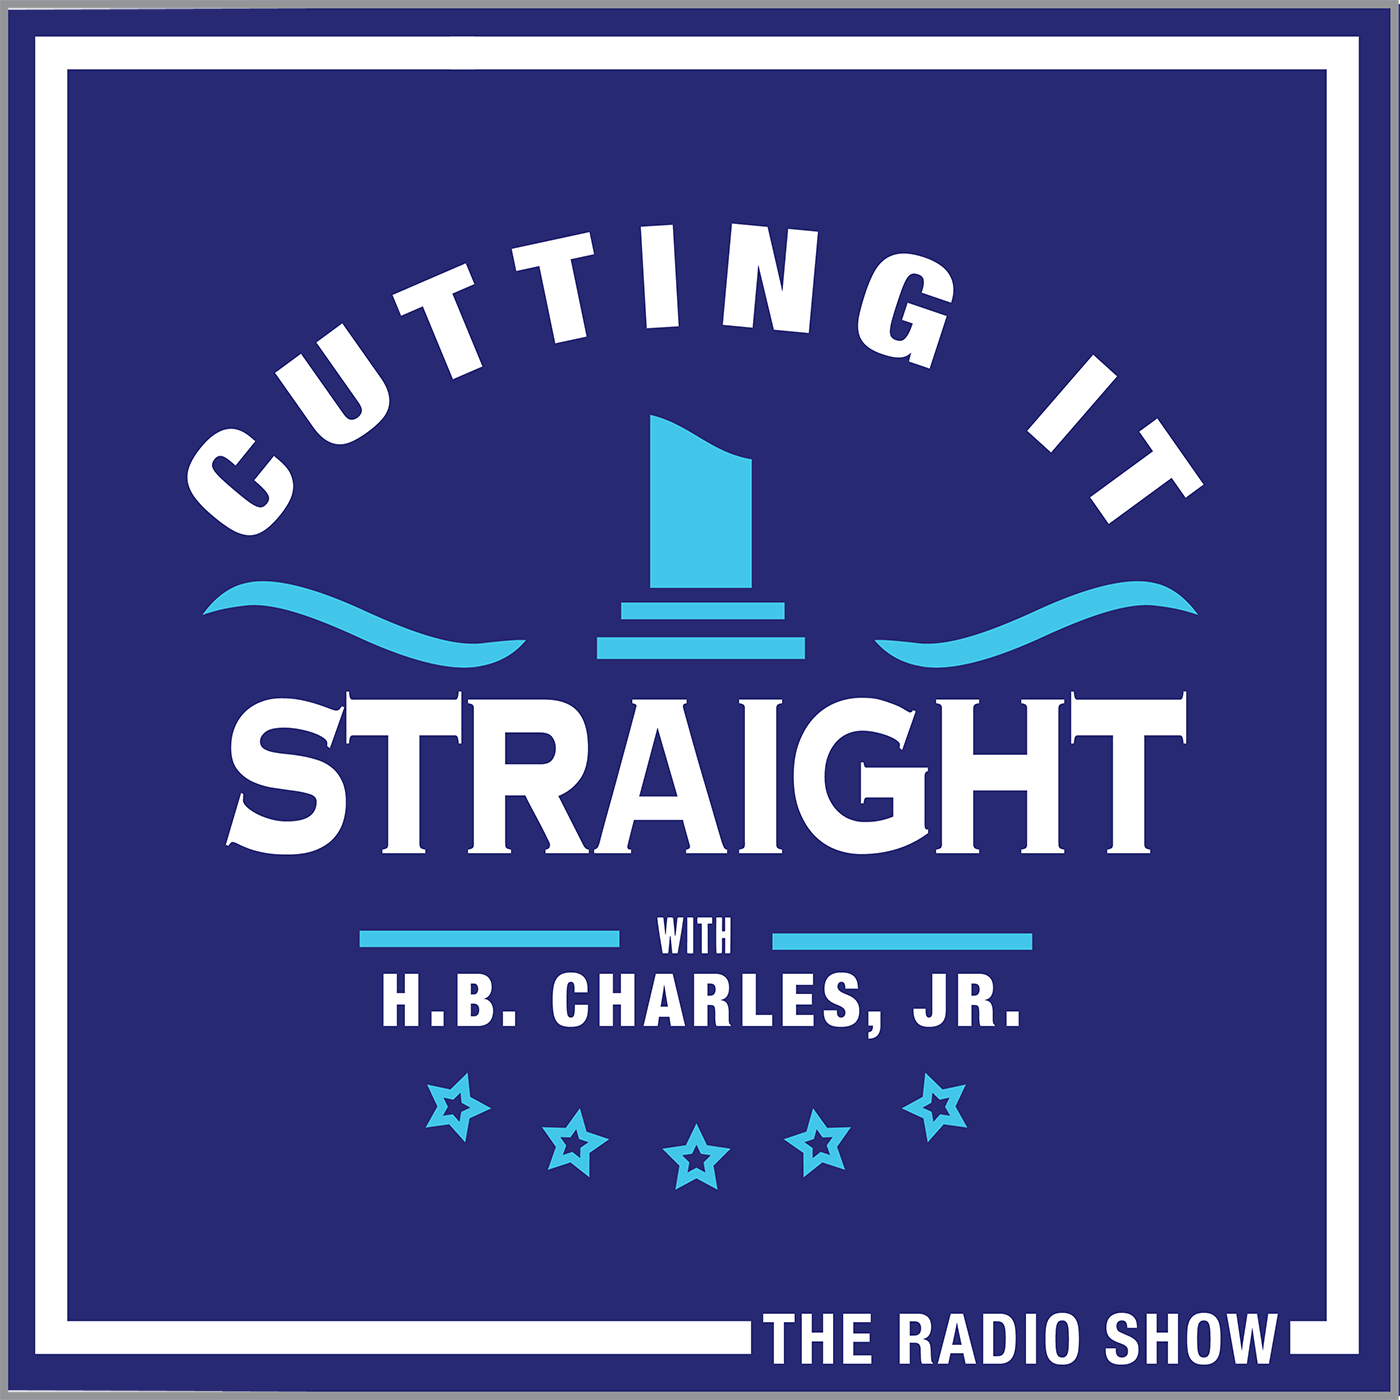 Cutting It Straight with H.B. Charles, Jr. show art